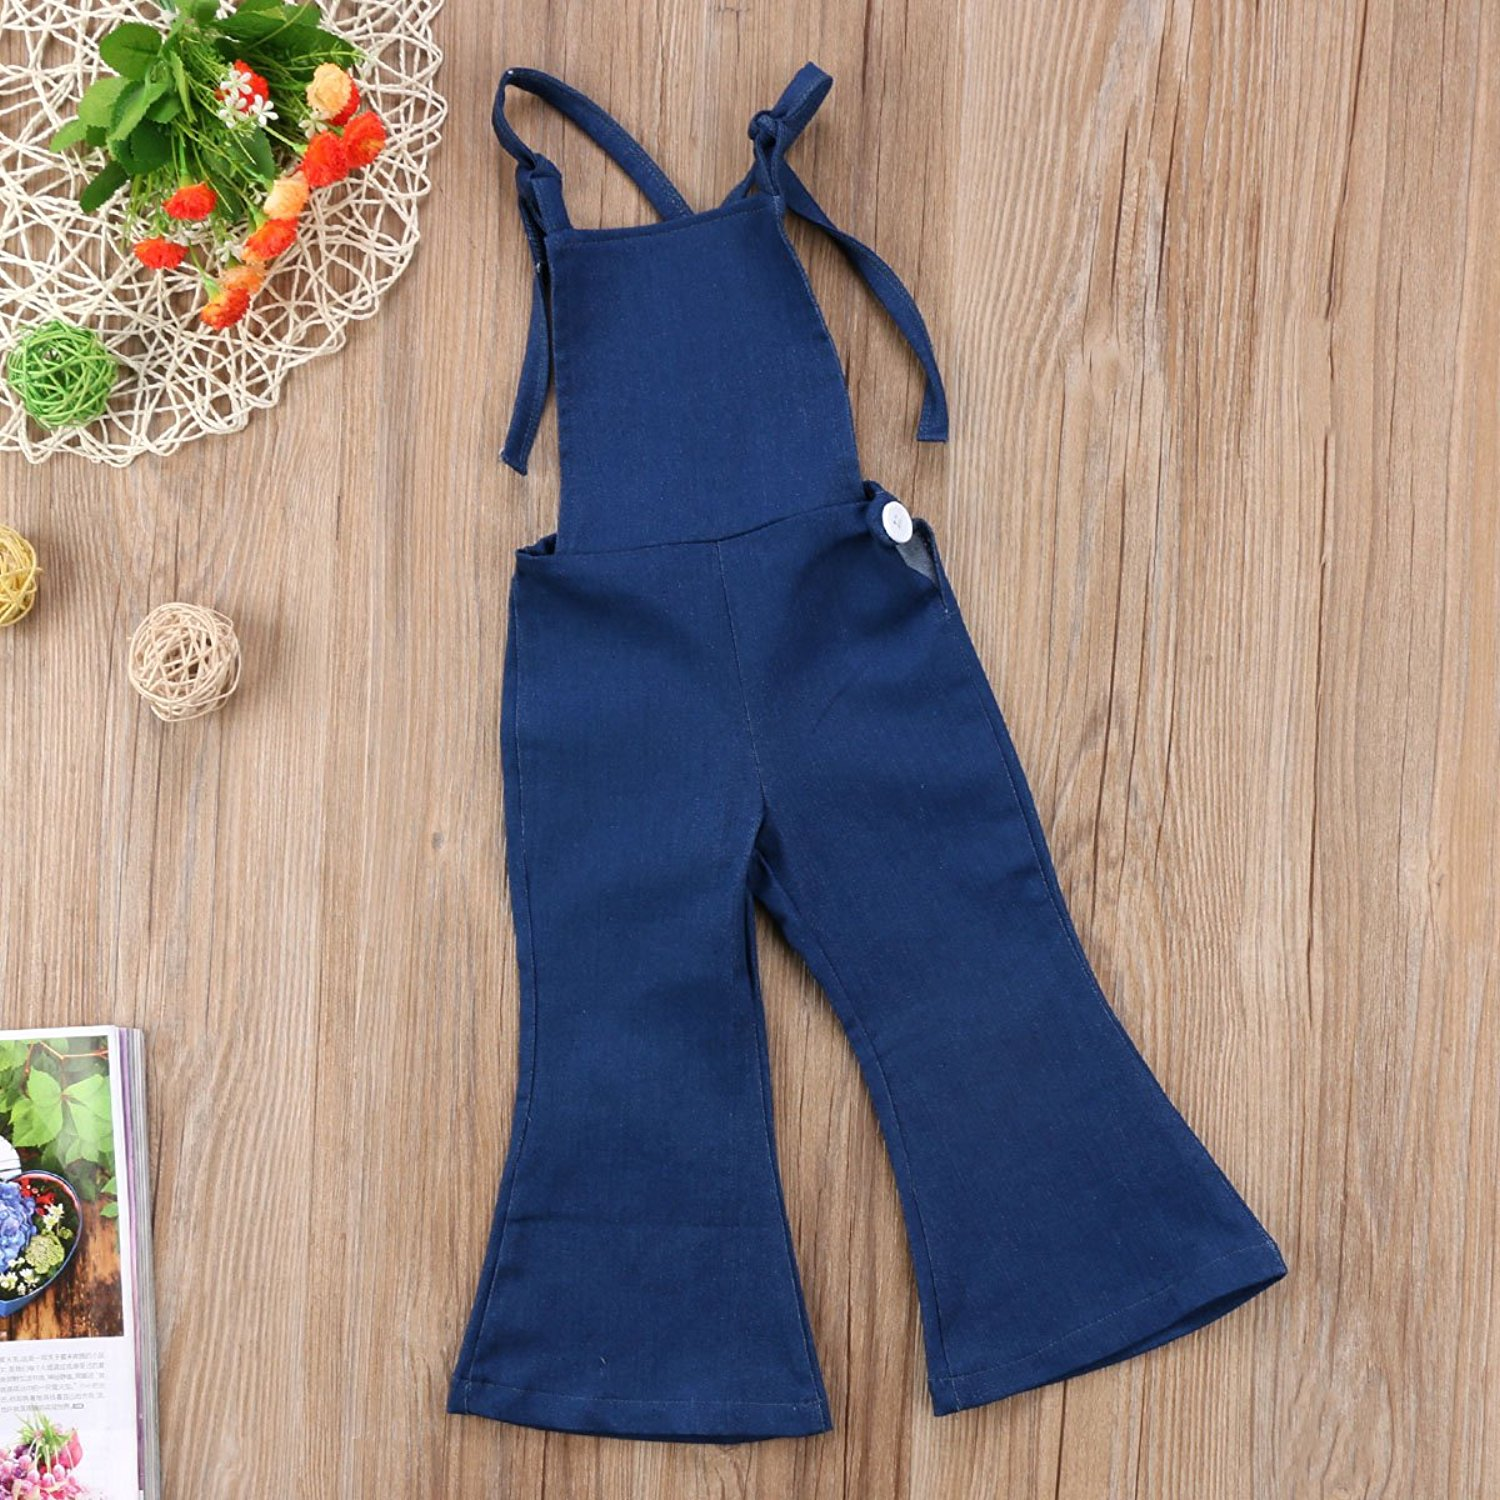 Pudcoco Baby Girls + Little Kids Suspender Overall Flared Denim Jeans Jumpsuit with Bell Leg - Adorable Amazon Outfits for Baby Girls and Toddlers by popular North Carolina style blogger, Glitter, Inc.